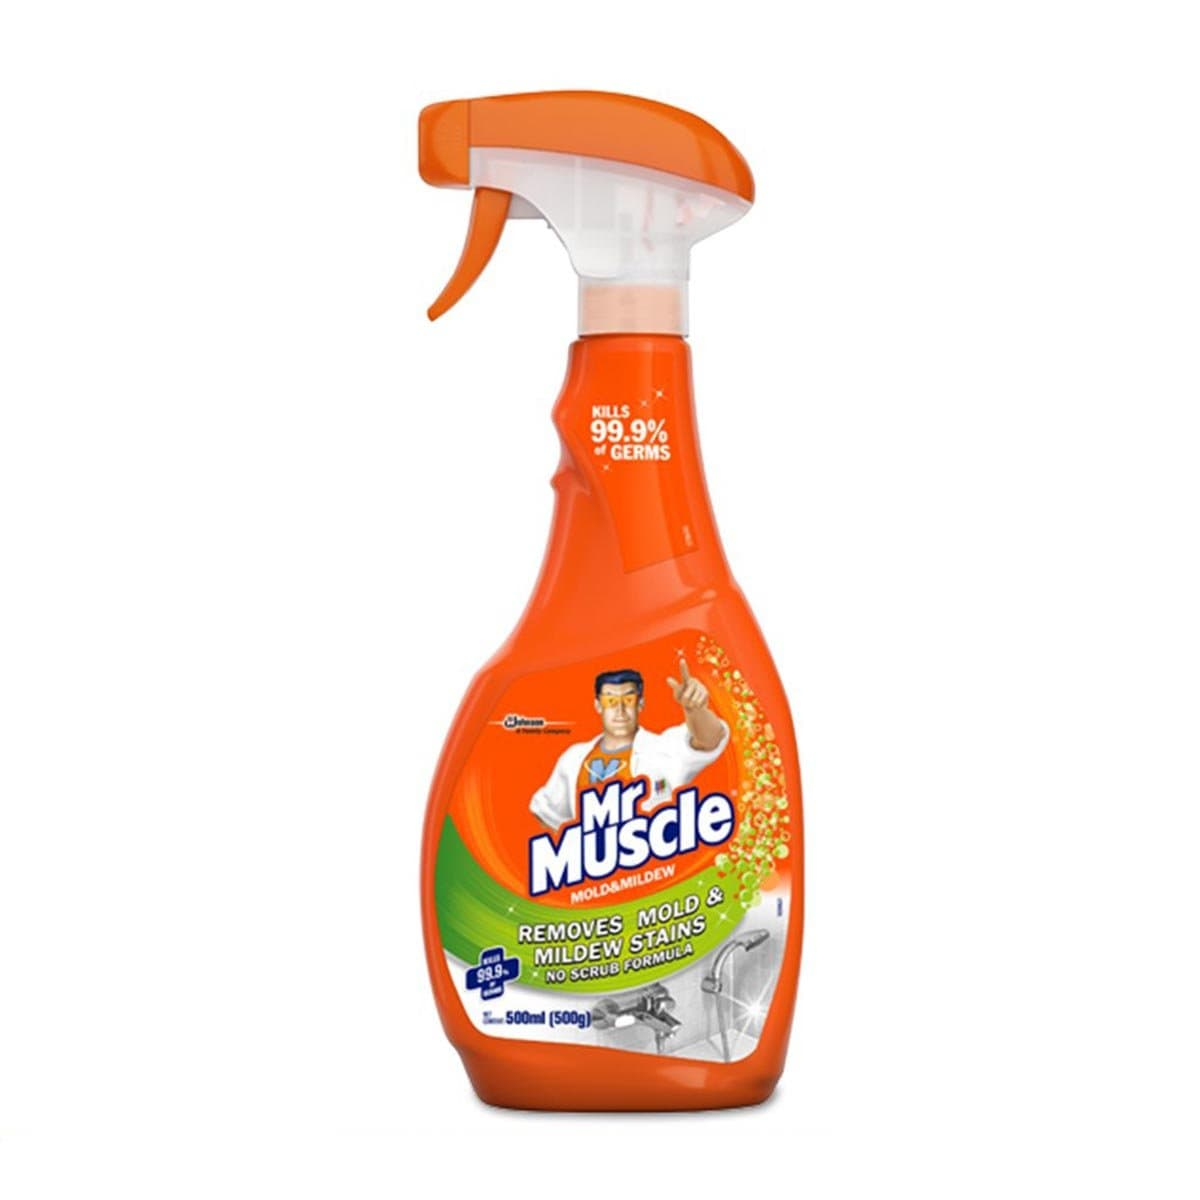 693612 Mr Muscle Mold & Mildew 500ml